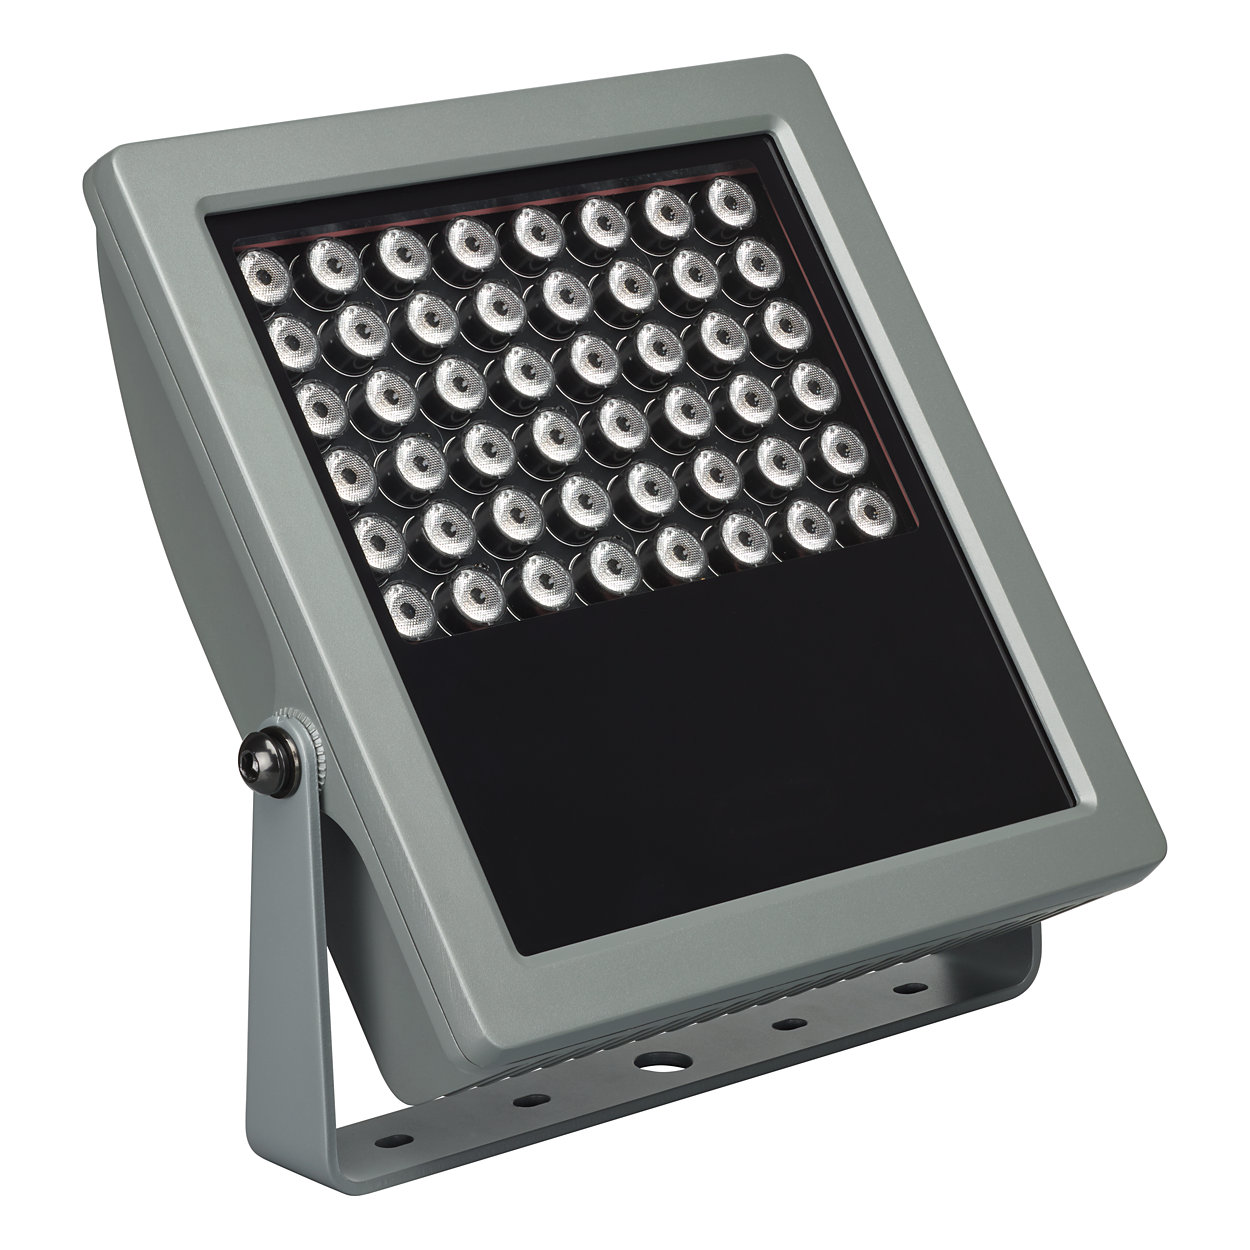 Vaya Flood HP – A high-power architectural LED flood light for dynamic colour-changing or crisp white lighting effects